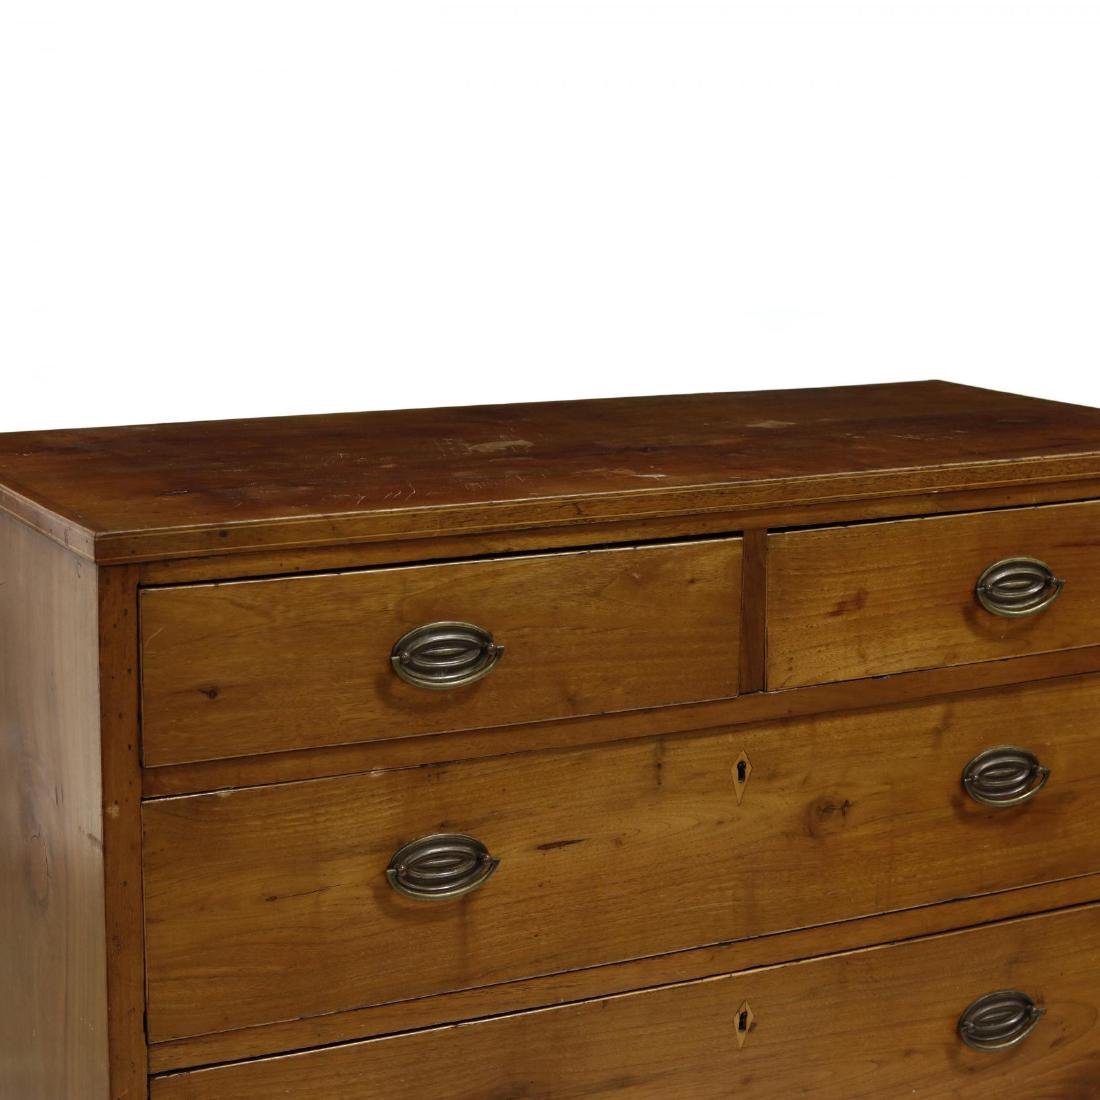 Southern Federal Chest of Drawers - 2